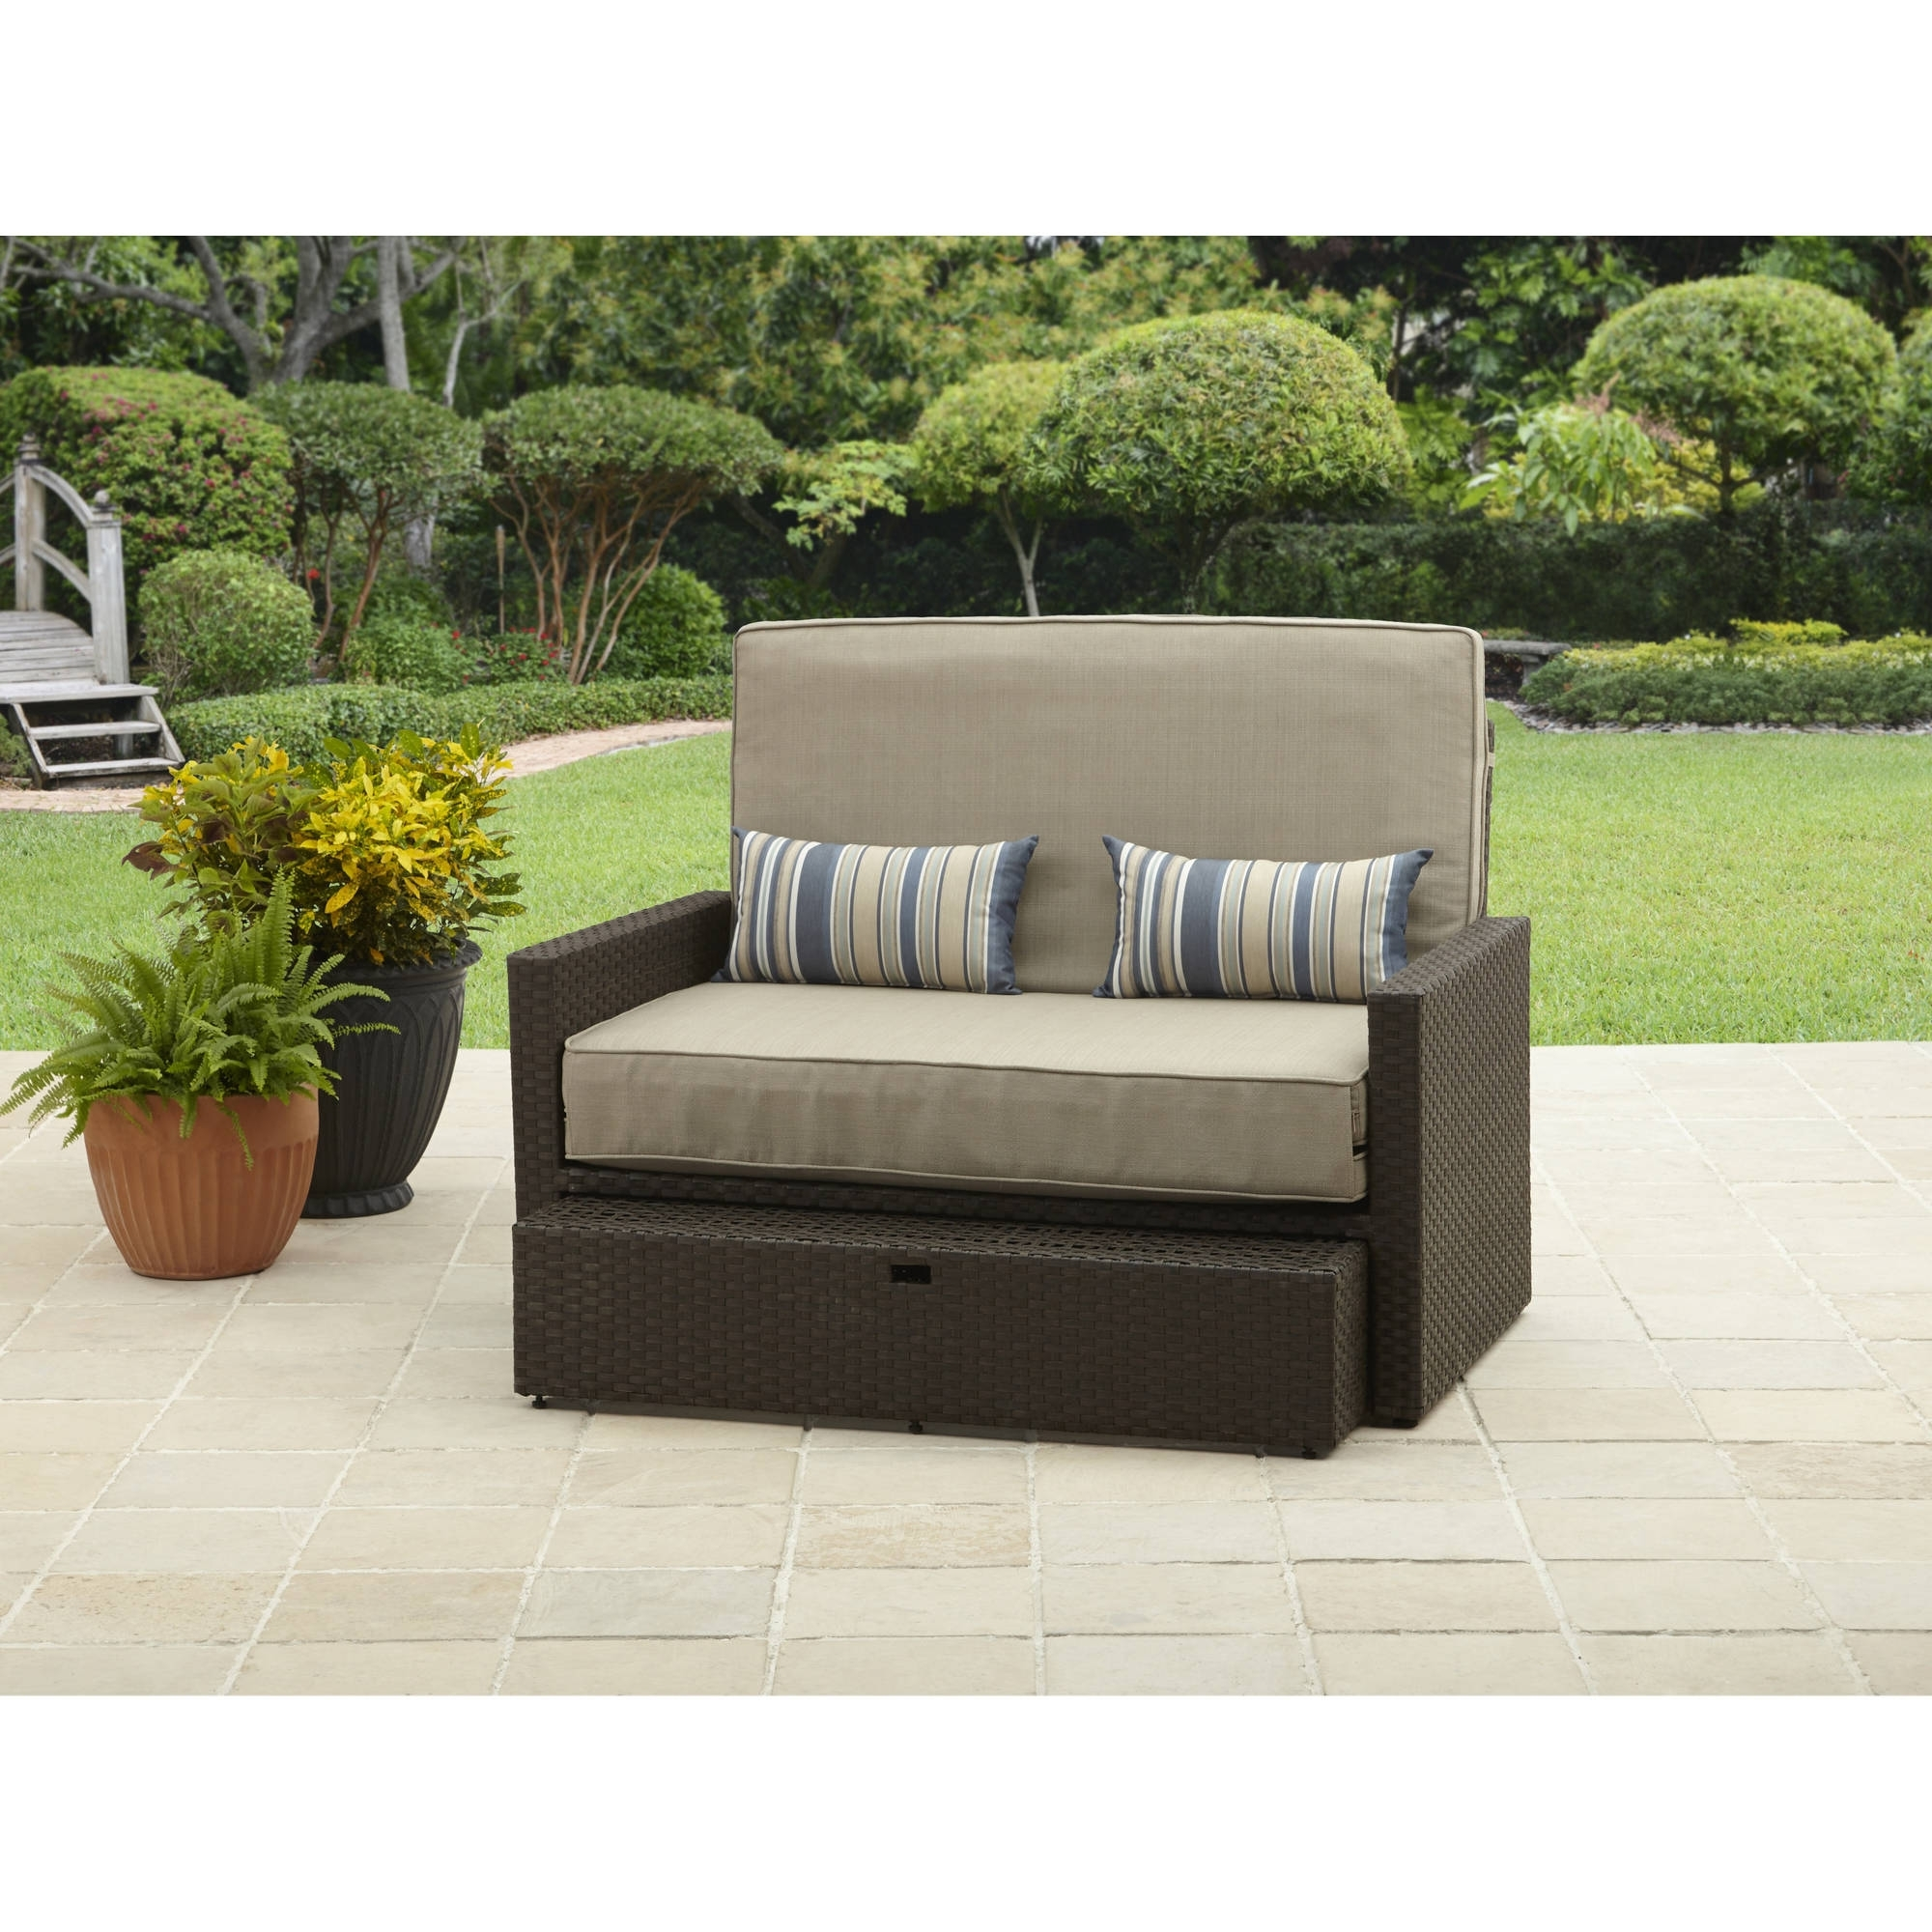 Loveseat Chaises With Most Popular Better Homes And Gardens Avila Beach Loveseat/chaise – Walmart (View 13 of 15)